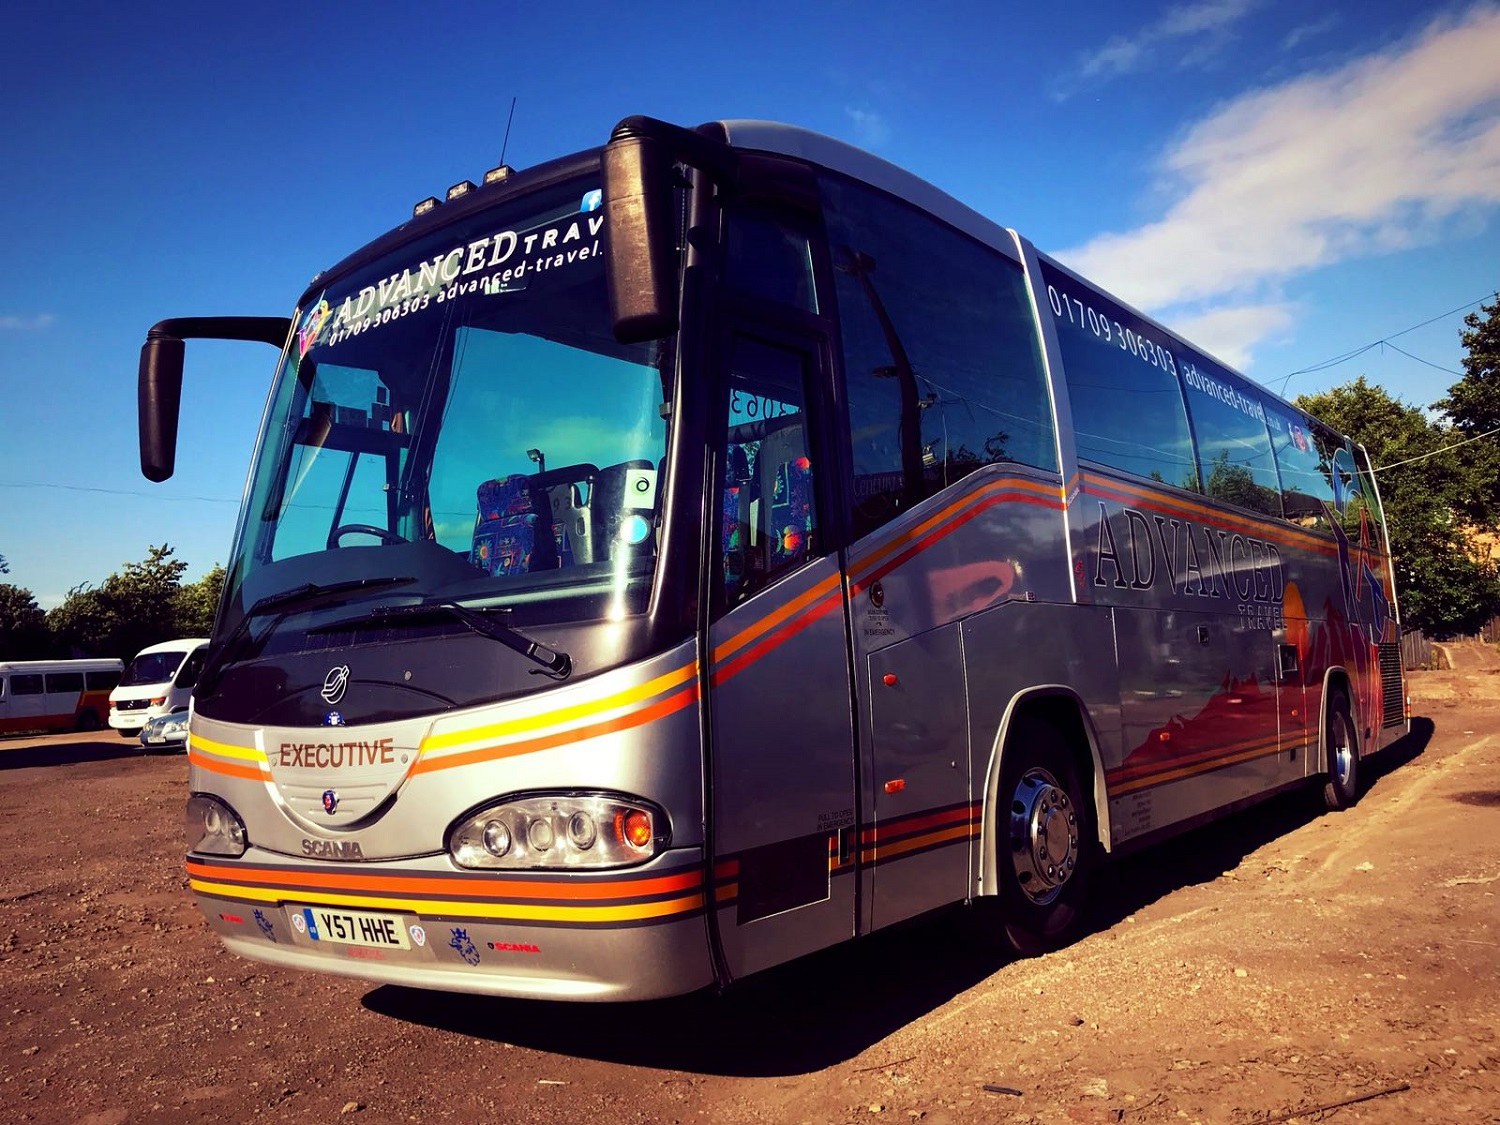 A view of the outside of Advanced Travel's 49 seater Scania Irizar coach, which is available for coach hire in Sheffield. The front and left hand side of the coach are visible. The coach is silver with an orange and yellow border. Advanced Travel's name, logo, website and phone number are displayed at the top of the windscreen and also on the side of the coach.